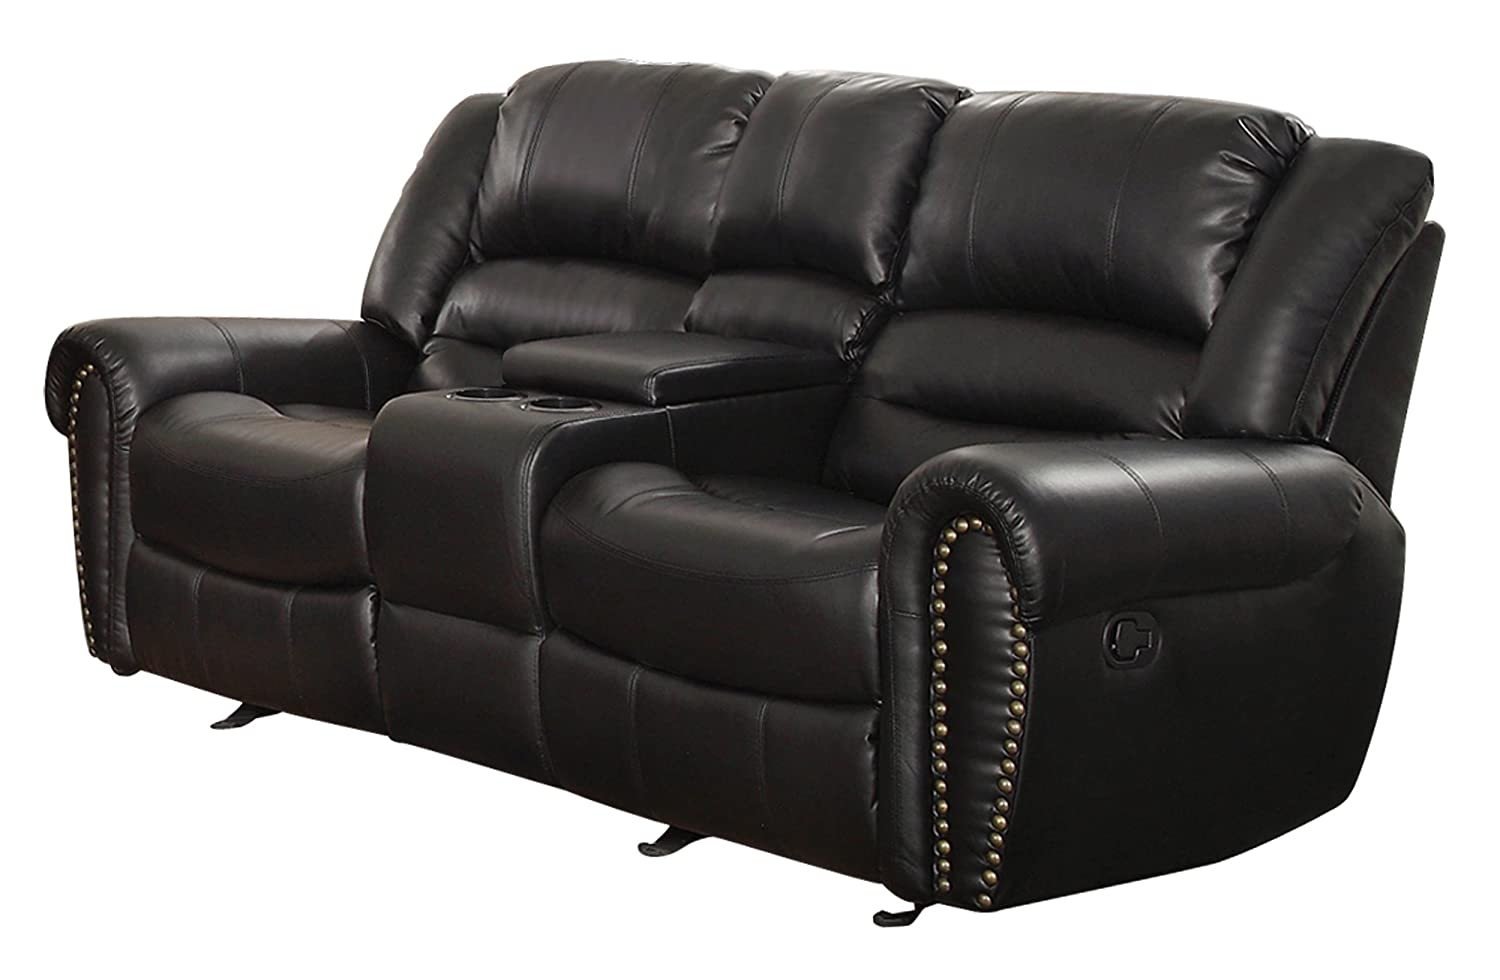 Amazon.com: Homelegance 9668BLK 2 Double Glider Reclining Loveseat With  Center Console, Black Bonded Leather: Kitchen U0026 Dining